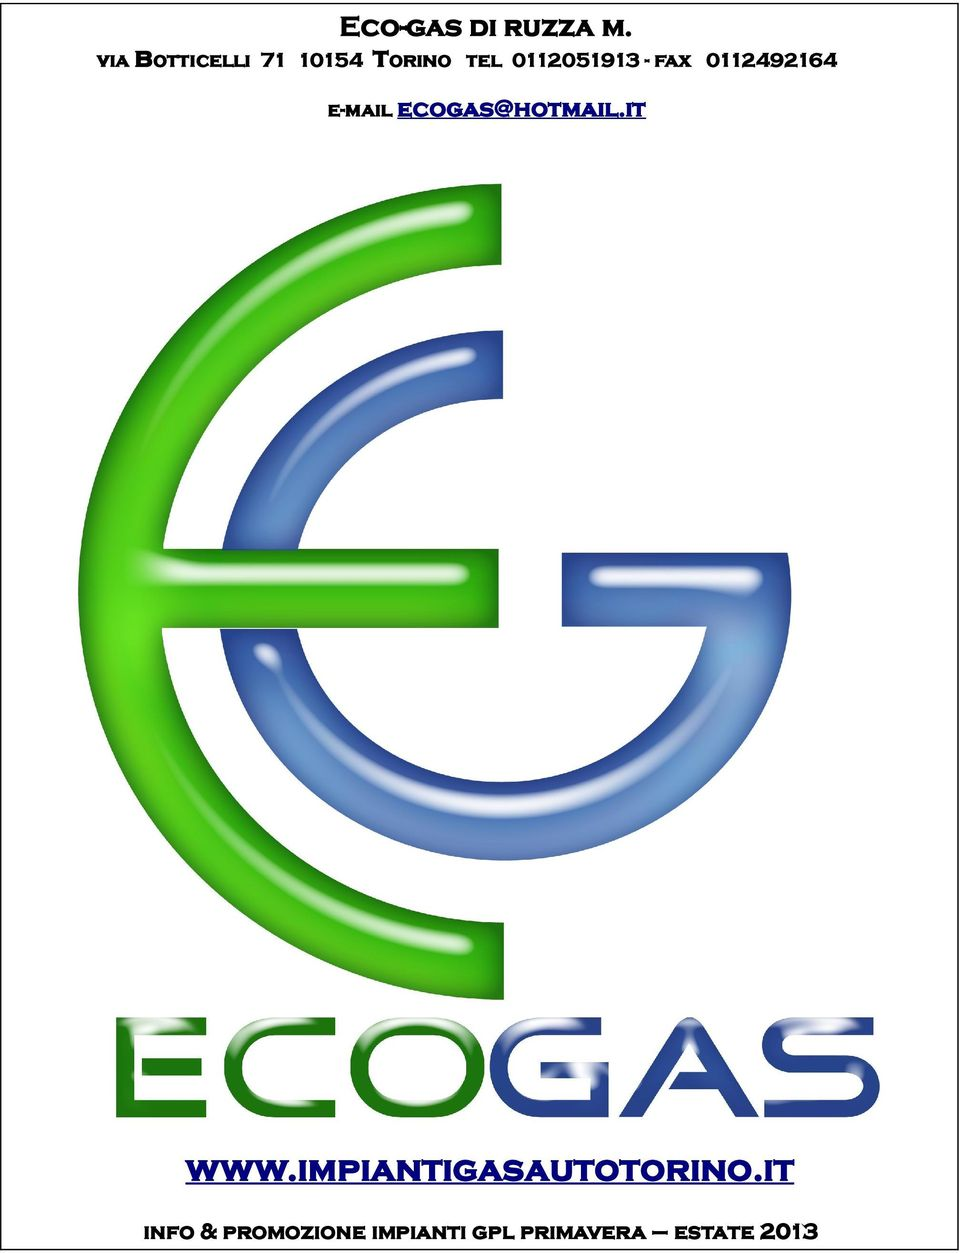 fax 0112492164 e-mail ecogas@hotmail.it www.